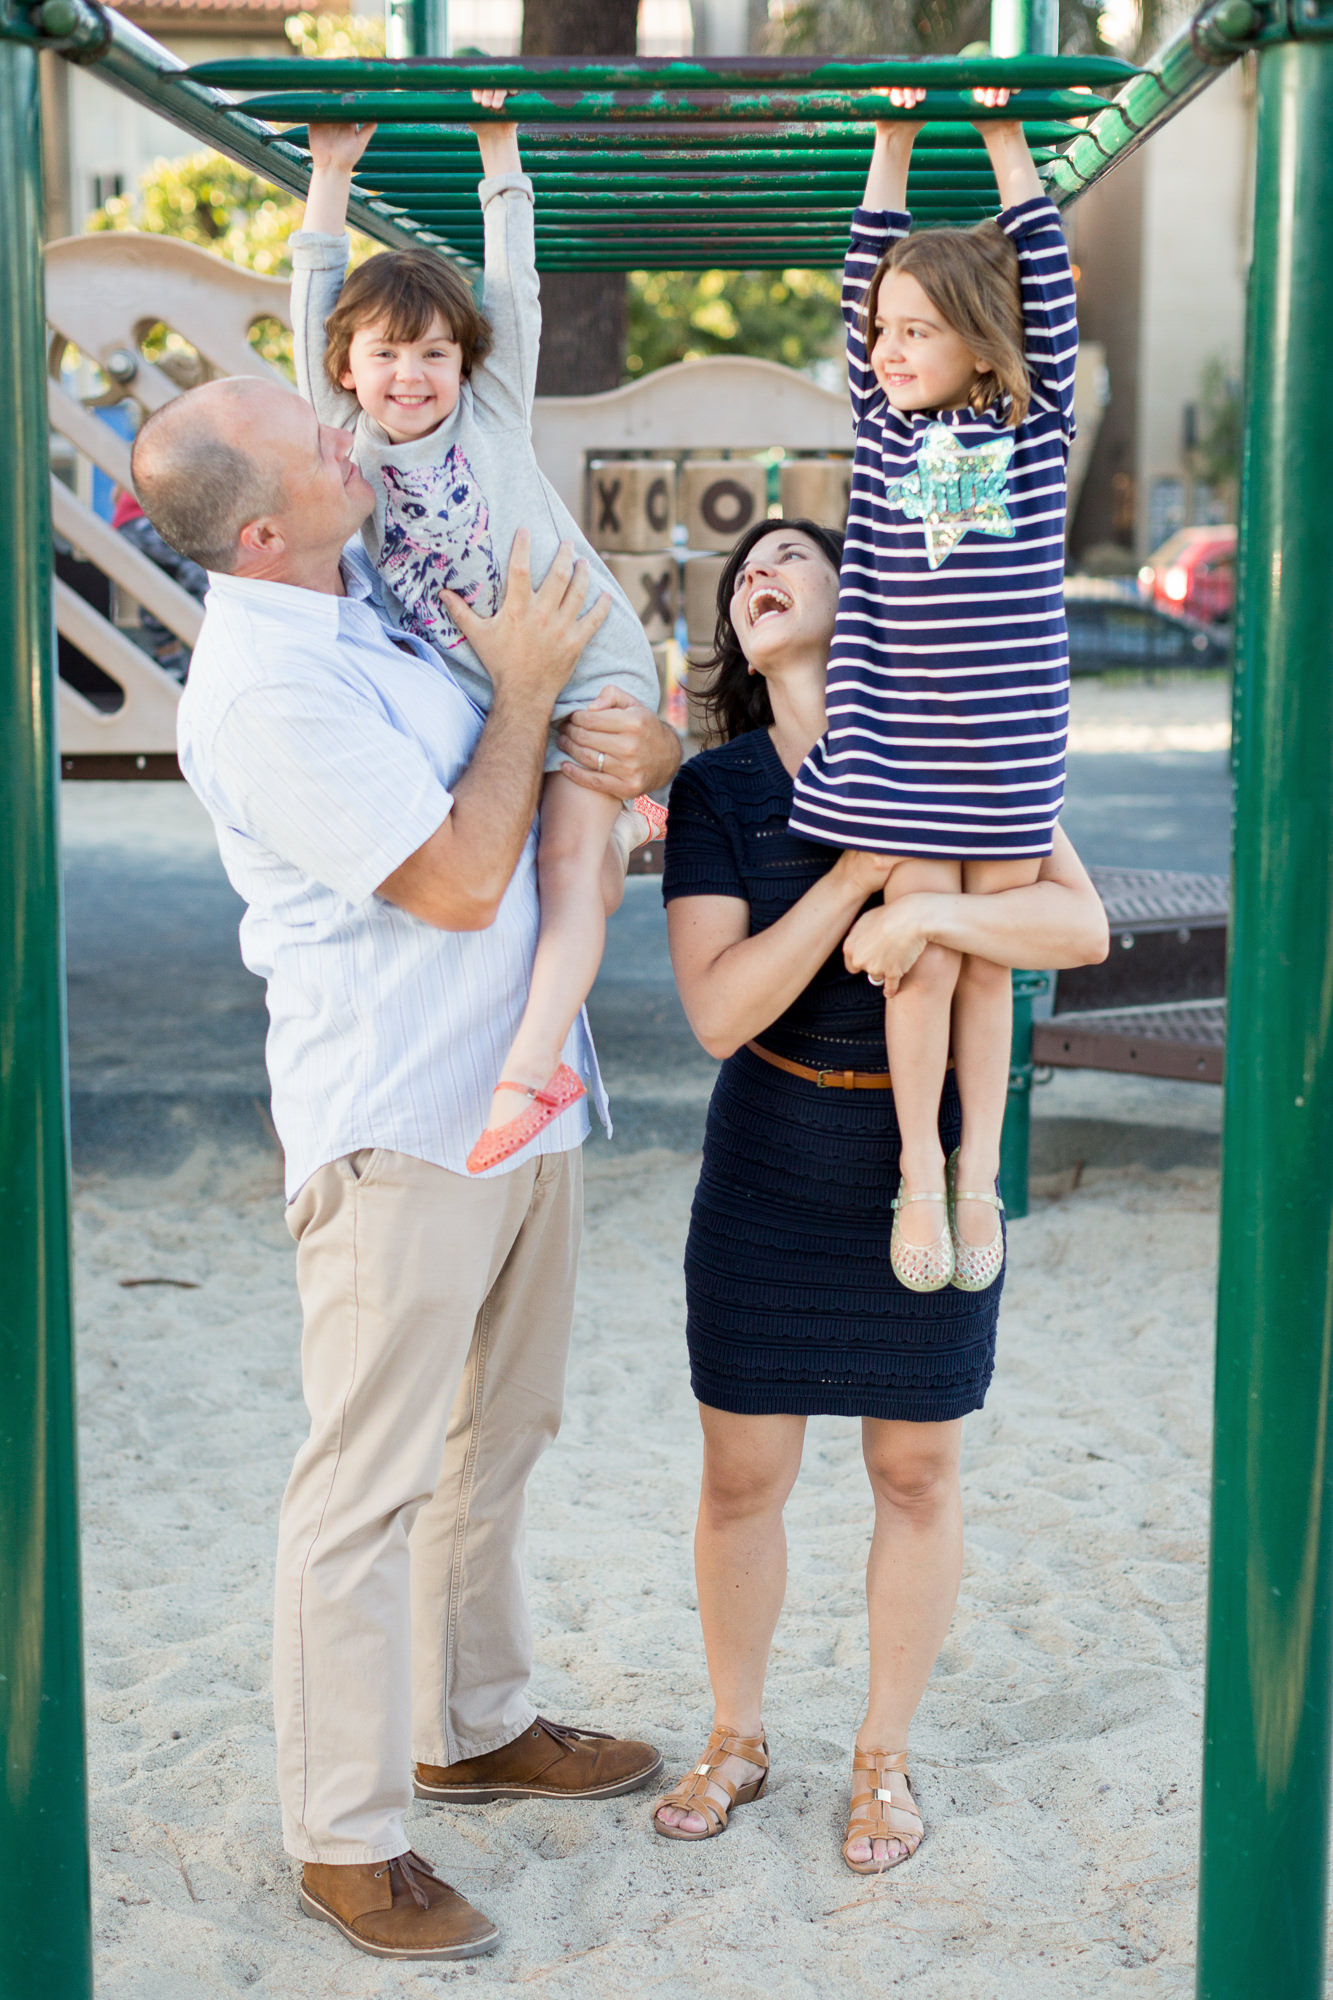 San Diego Family Photographer Photographer Christine Dammann Photography Stephanie F.-2.jpg